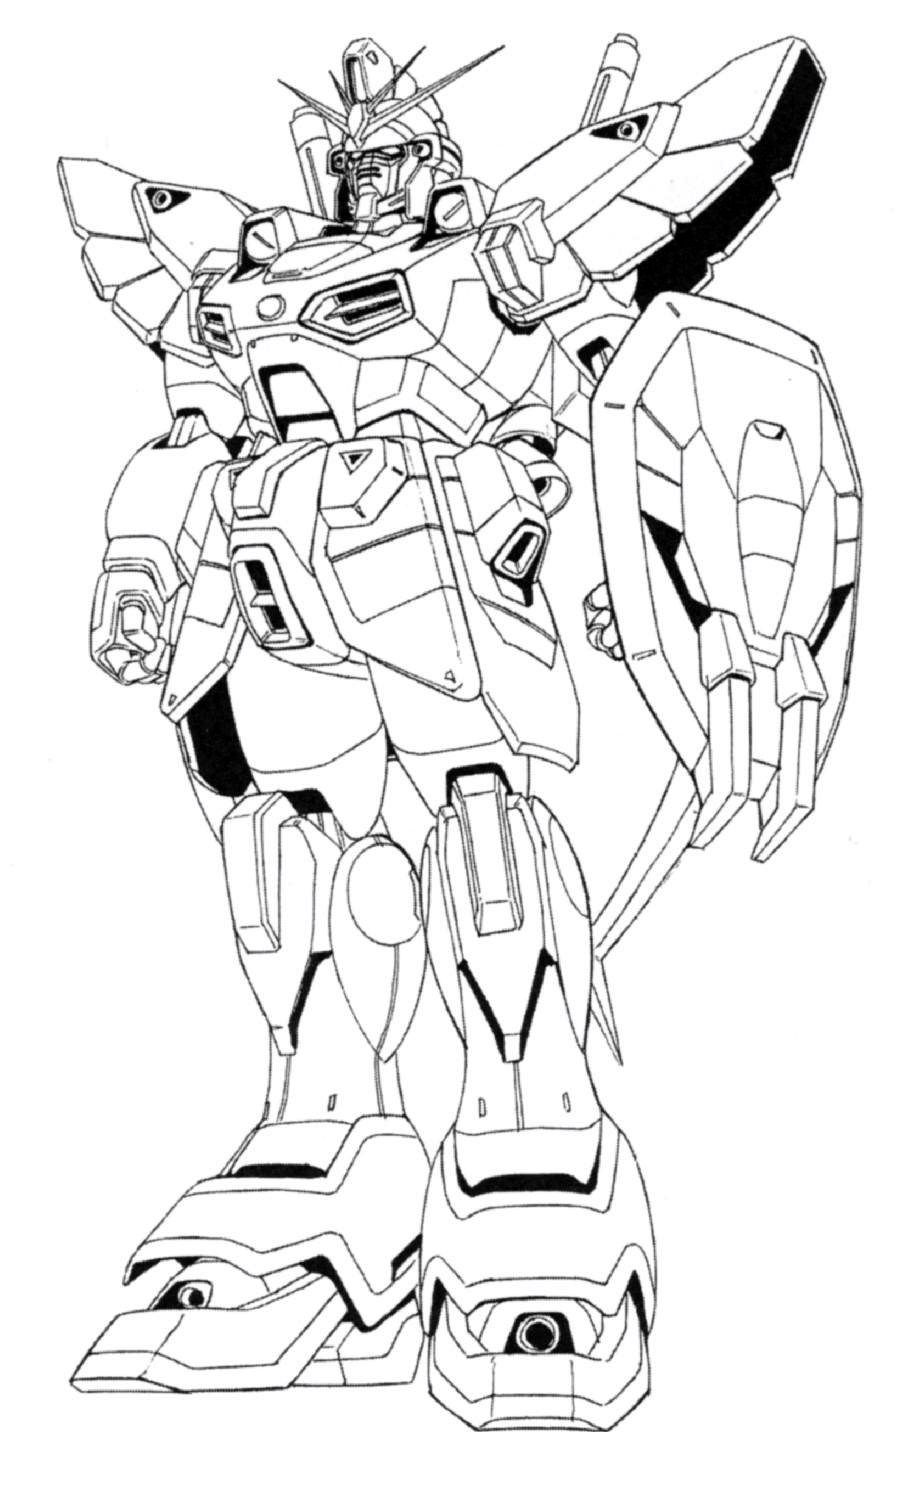 gundam coloring pages Sandrock | coloring pages | Pinterest | Coloring pages and Gundam gundam coloring pages